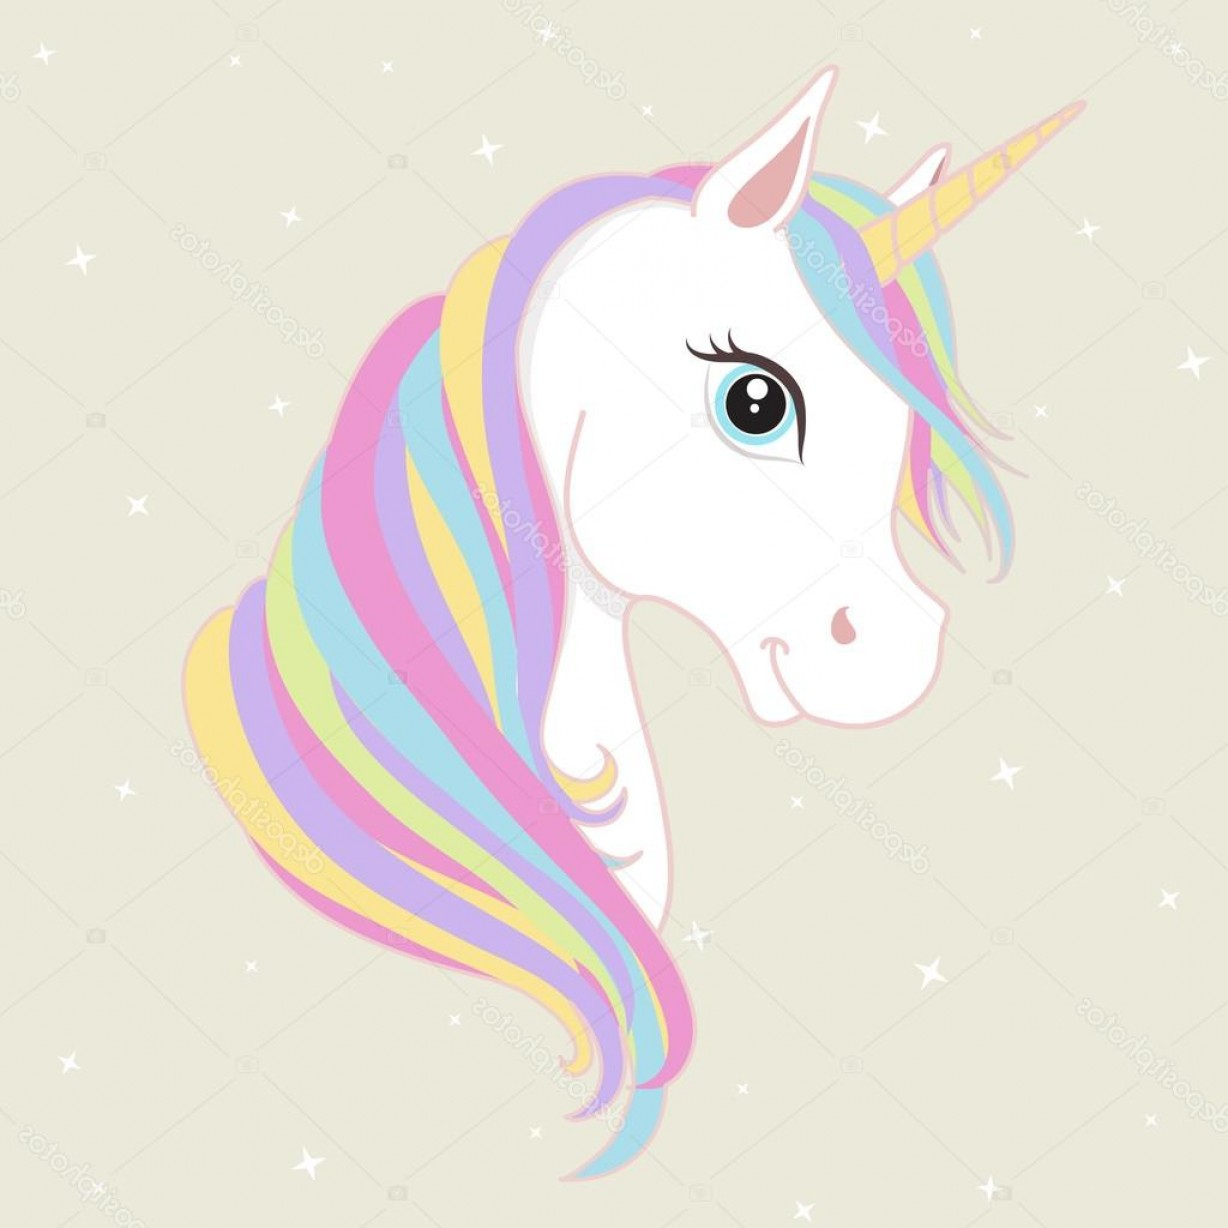 1228x1228 Stock Illustration White Unicorn Vector Head With Shopatcloth